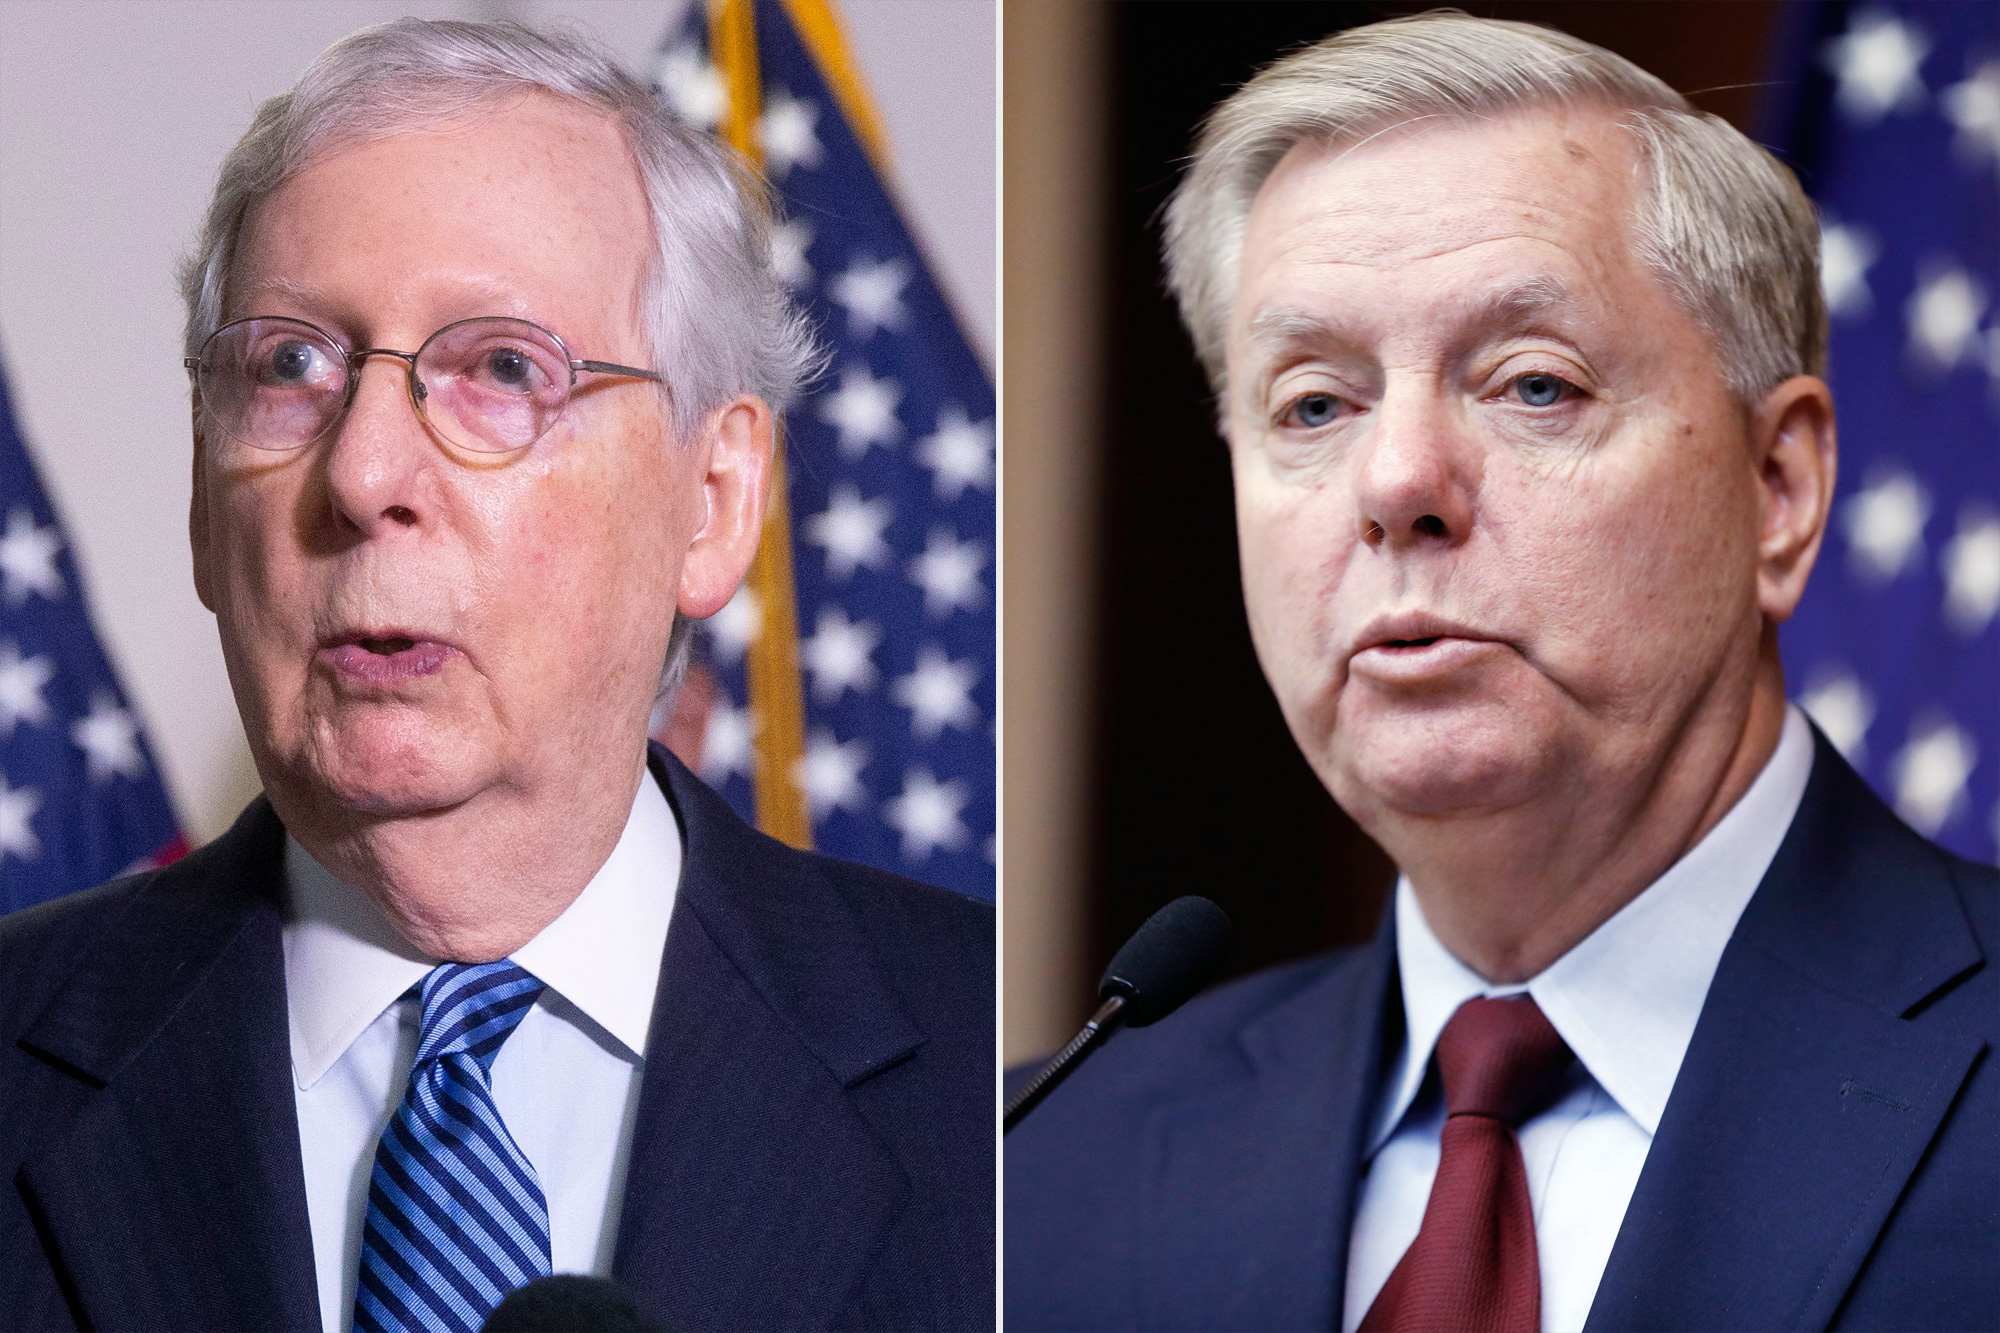 GOP Senators Accused of 'Hypocrisy' Amid Push to Fill RBG's Supreme Court Seat Before Election